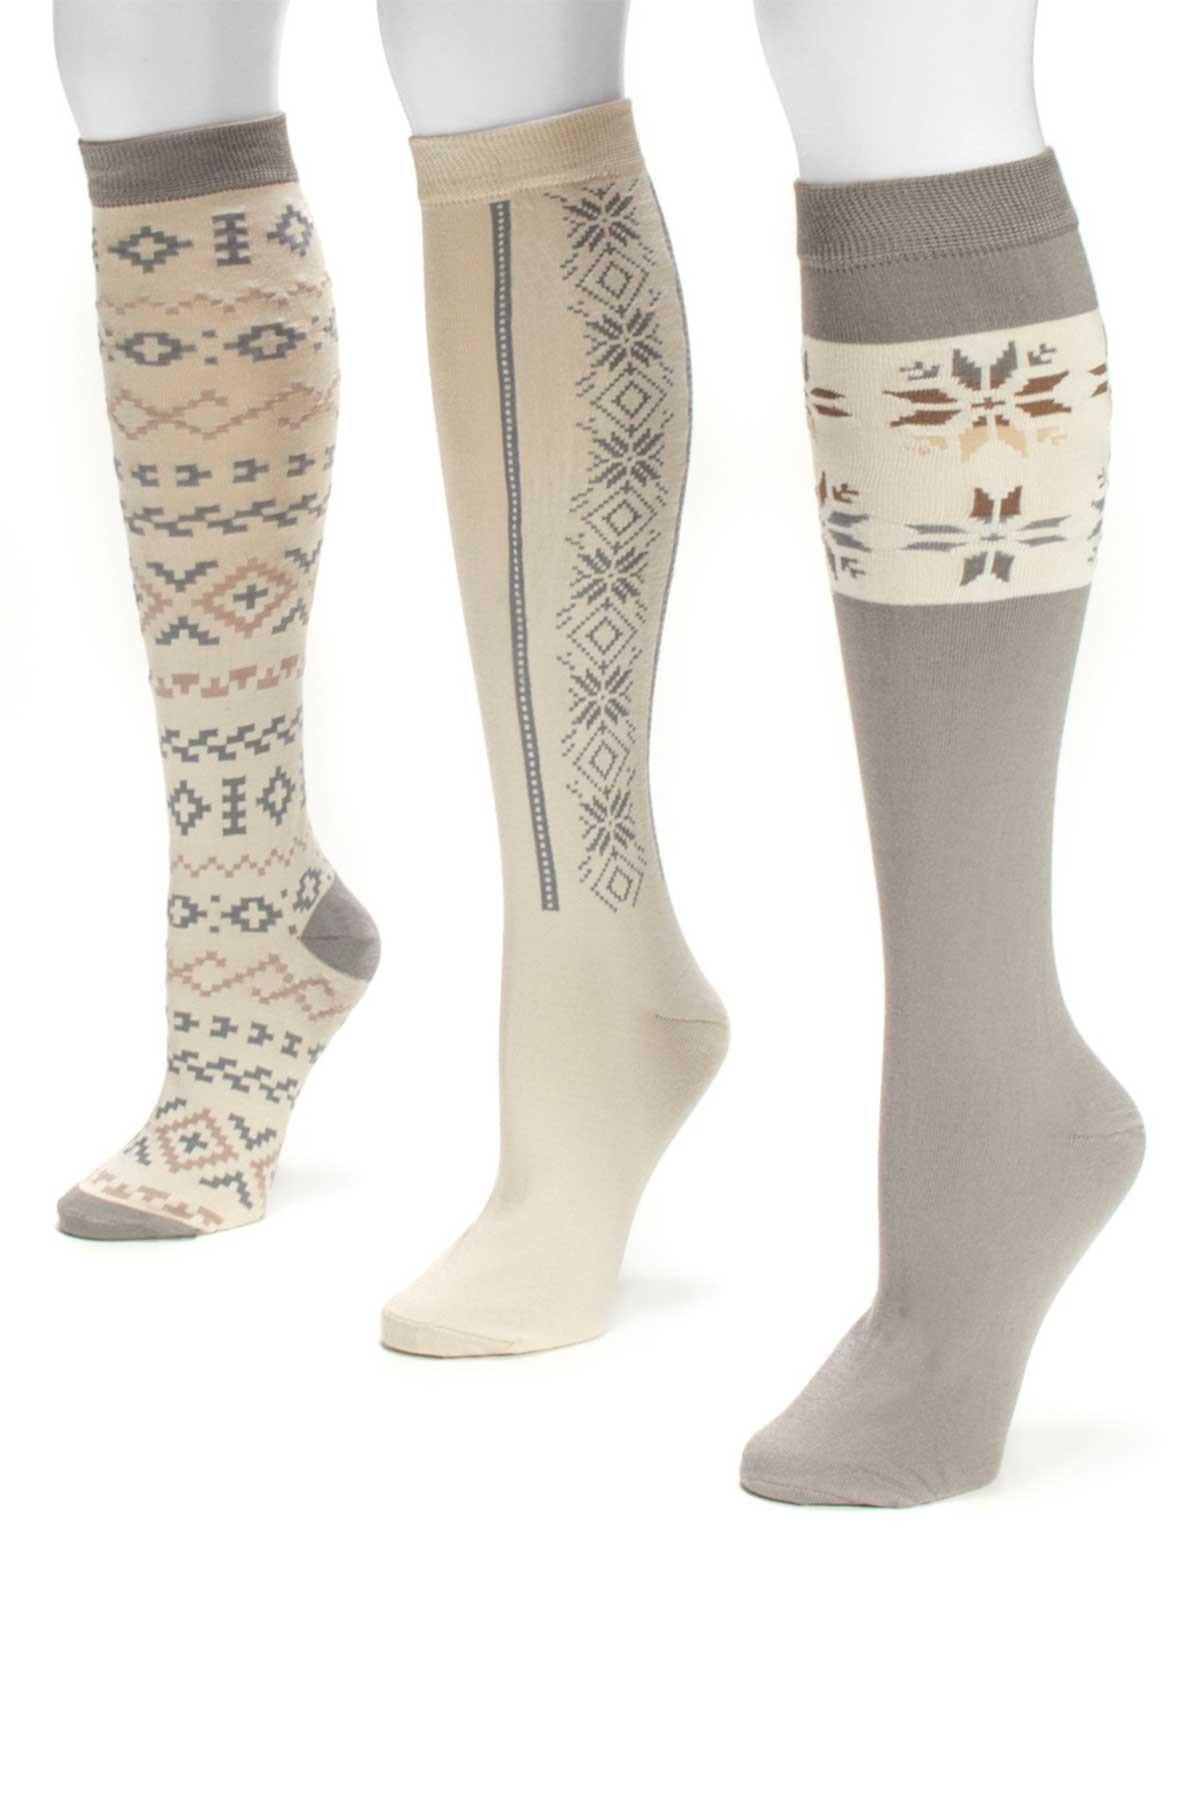 556dd2750f1 Gallery. Previously sold at  Nordstrom Rack · Women s Knee High Socks ...